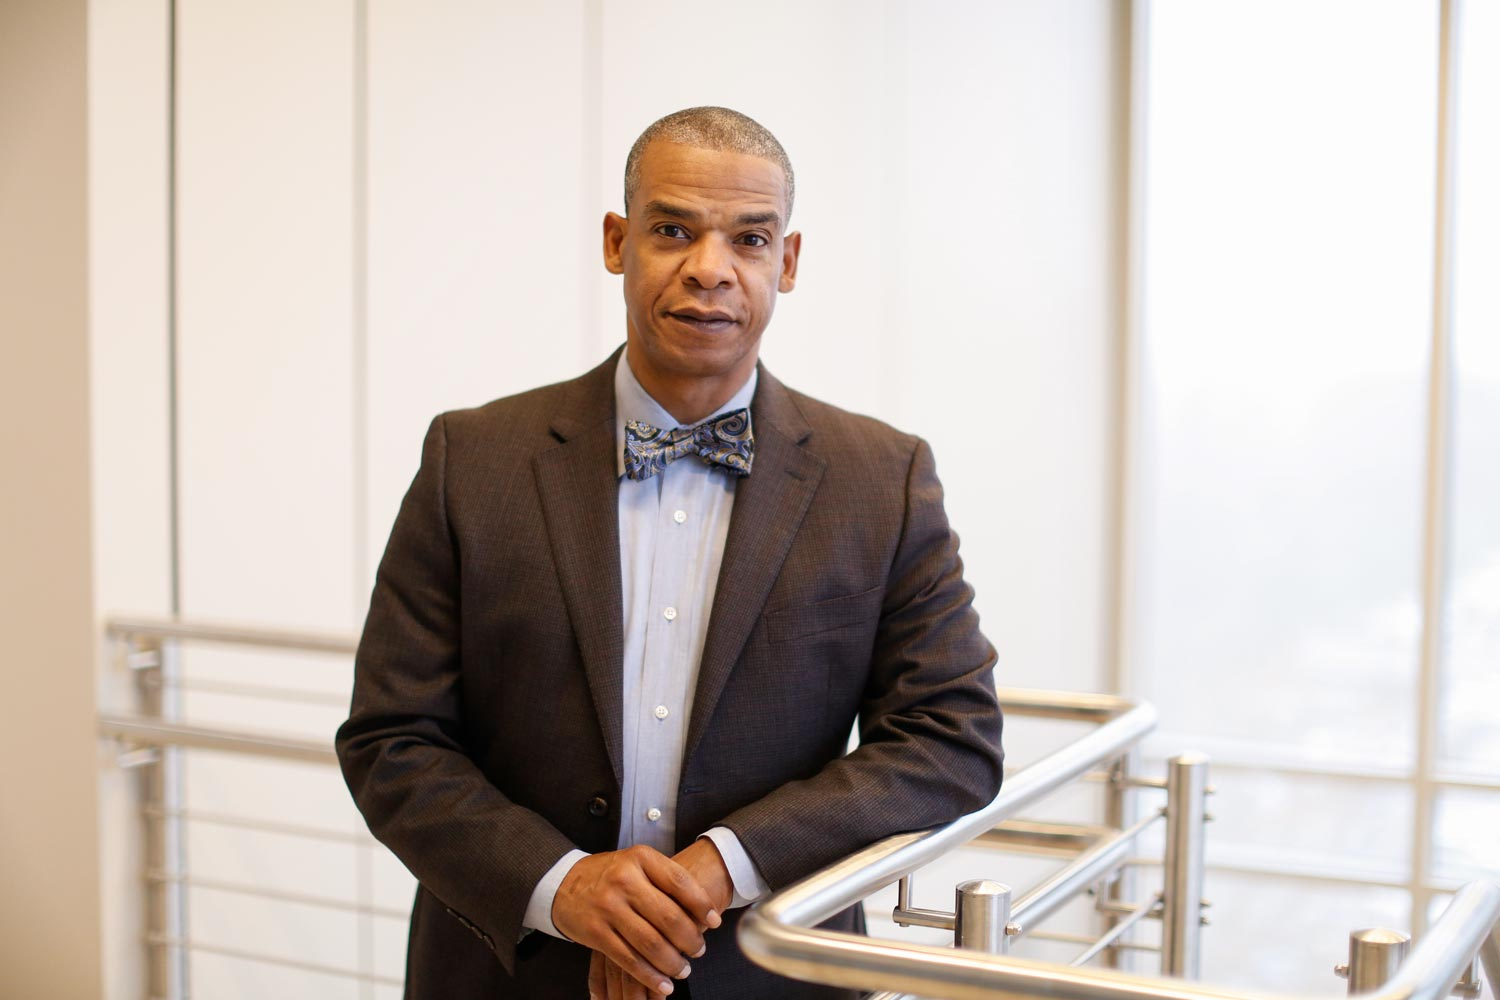 John Gates, associate dean and chief diversity officer for UVA's School of Engineering, said there is a key distinction to be made between equity and equality.